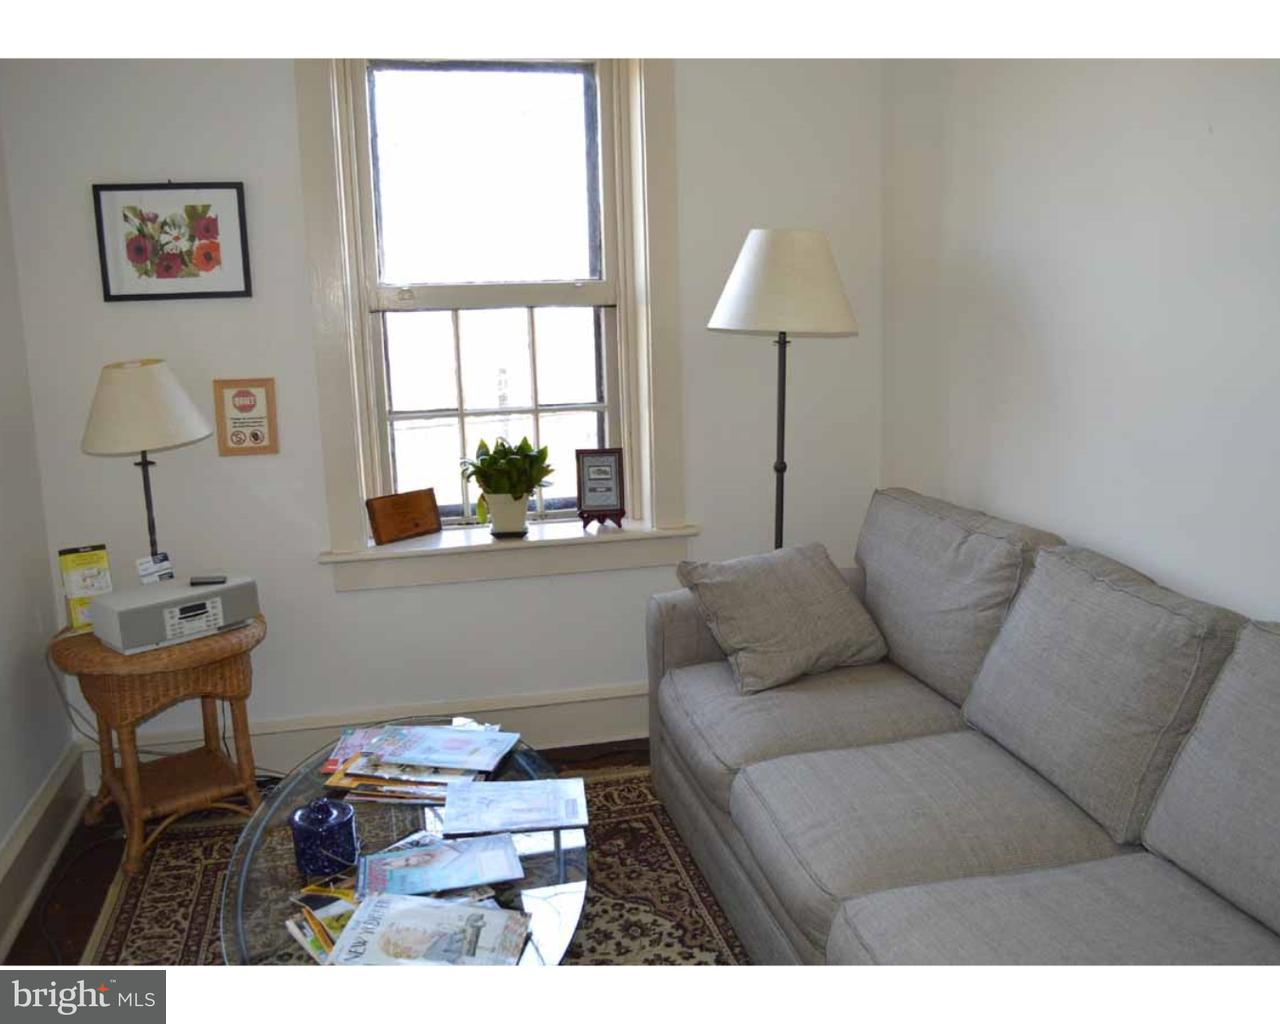 110 PARK AVE #3, SWARTHMORE - Listed at $500, SWARTHMORE